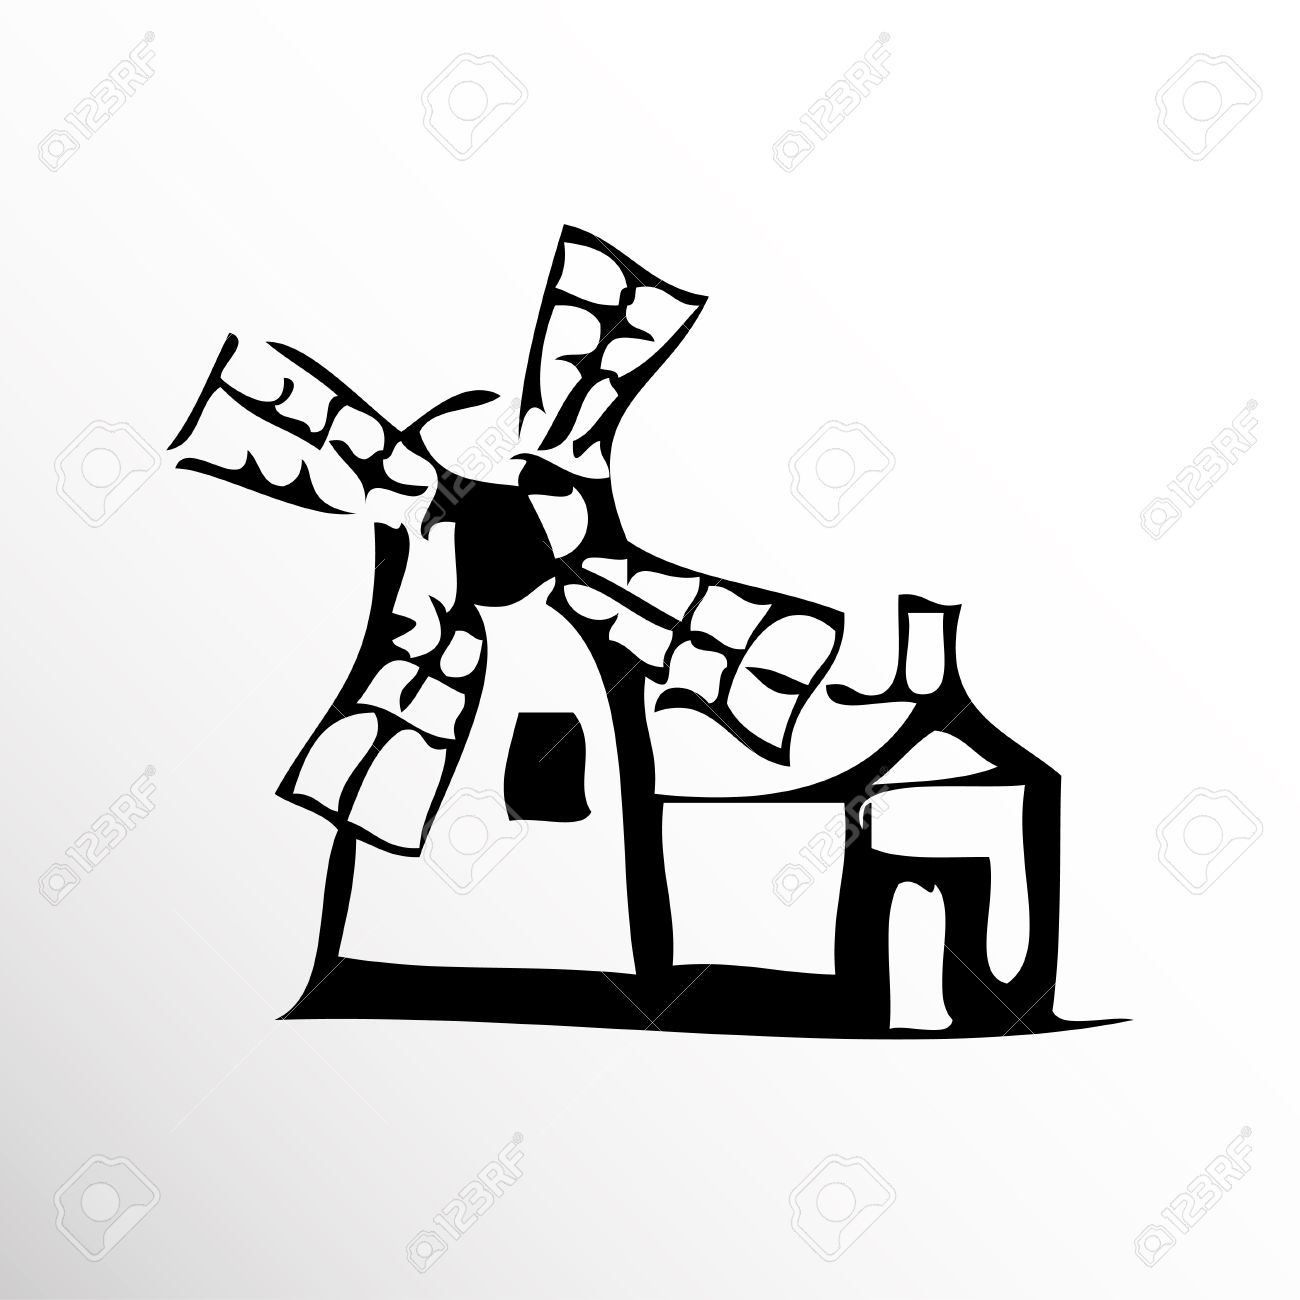 1300x1300 Windmill. Drawing. Sketch Style. Royalty Free Cliparts, Vectors